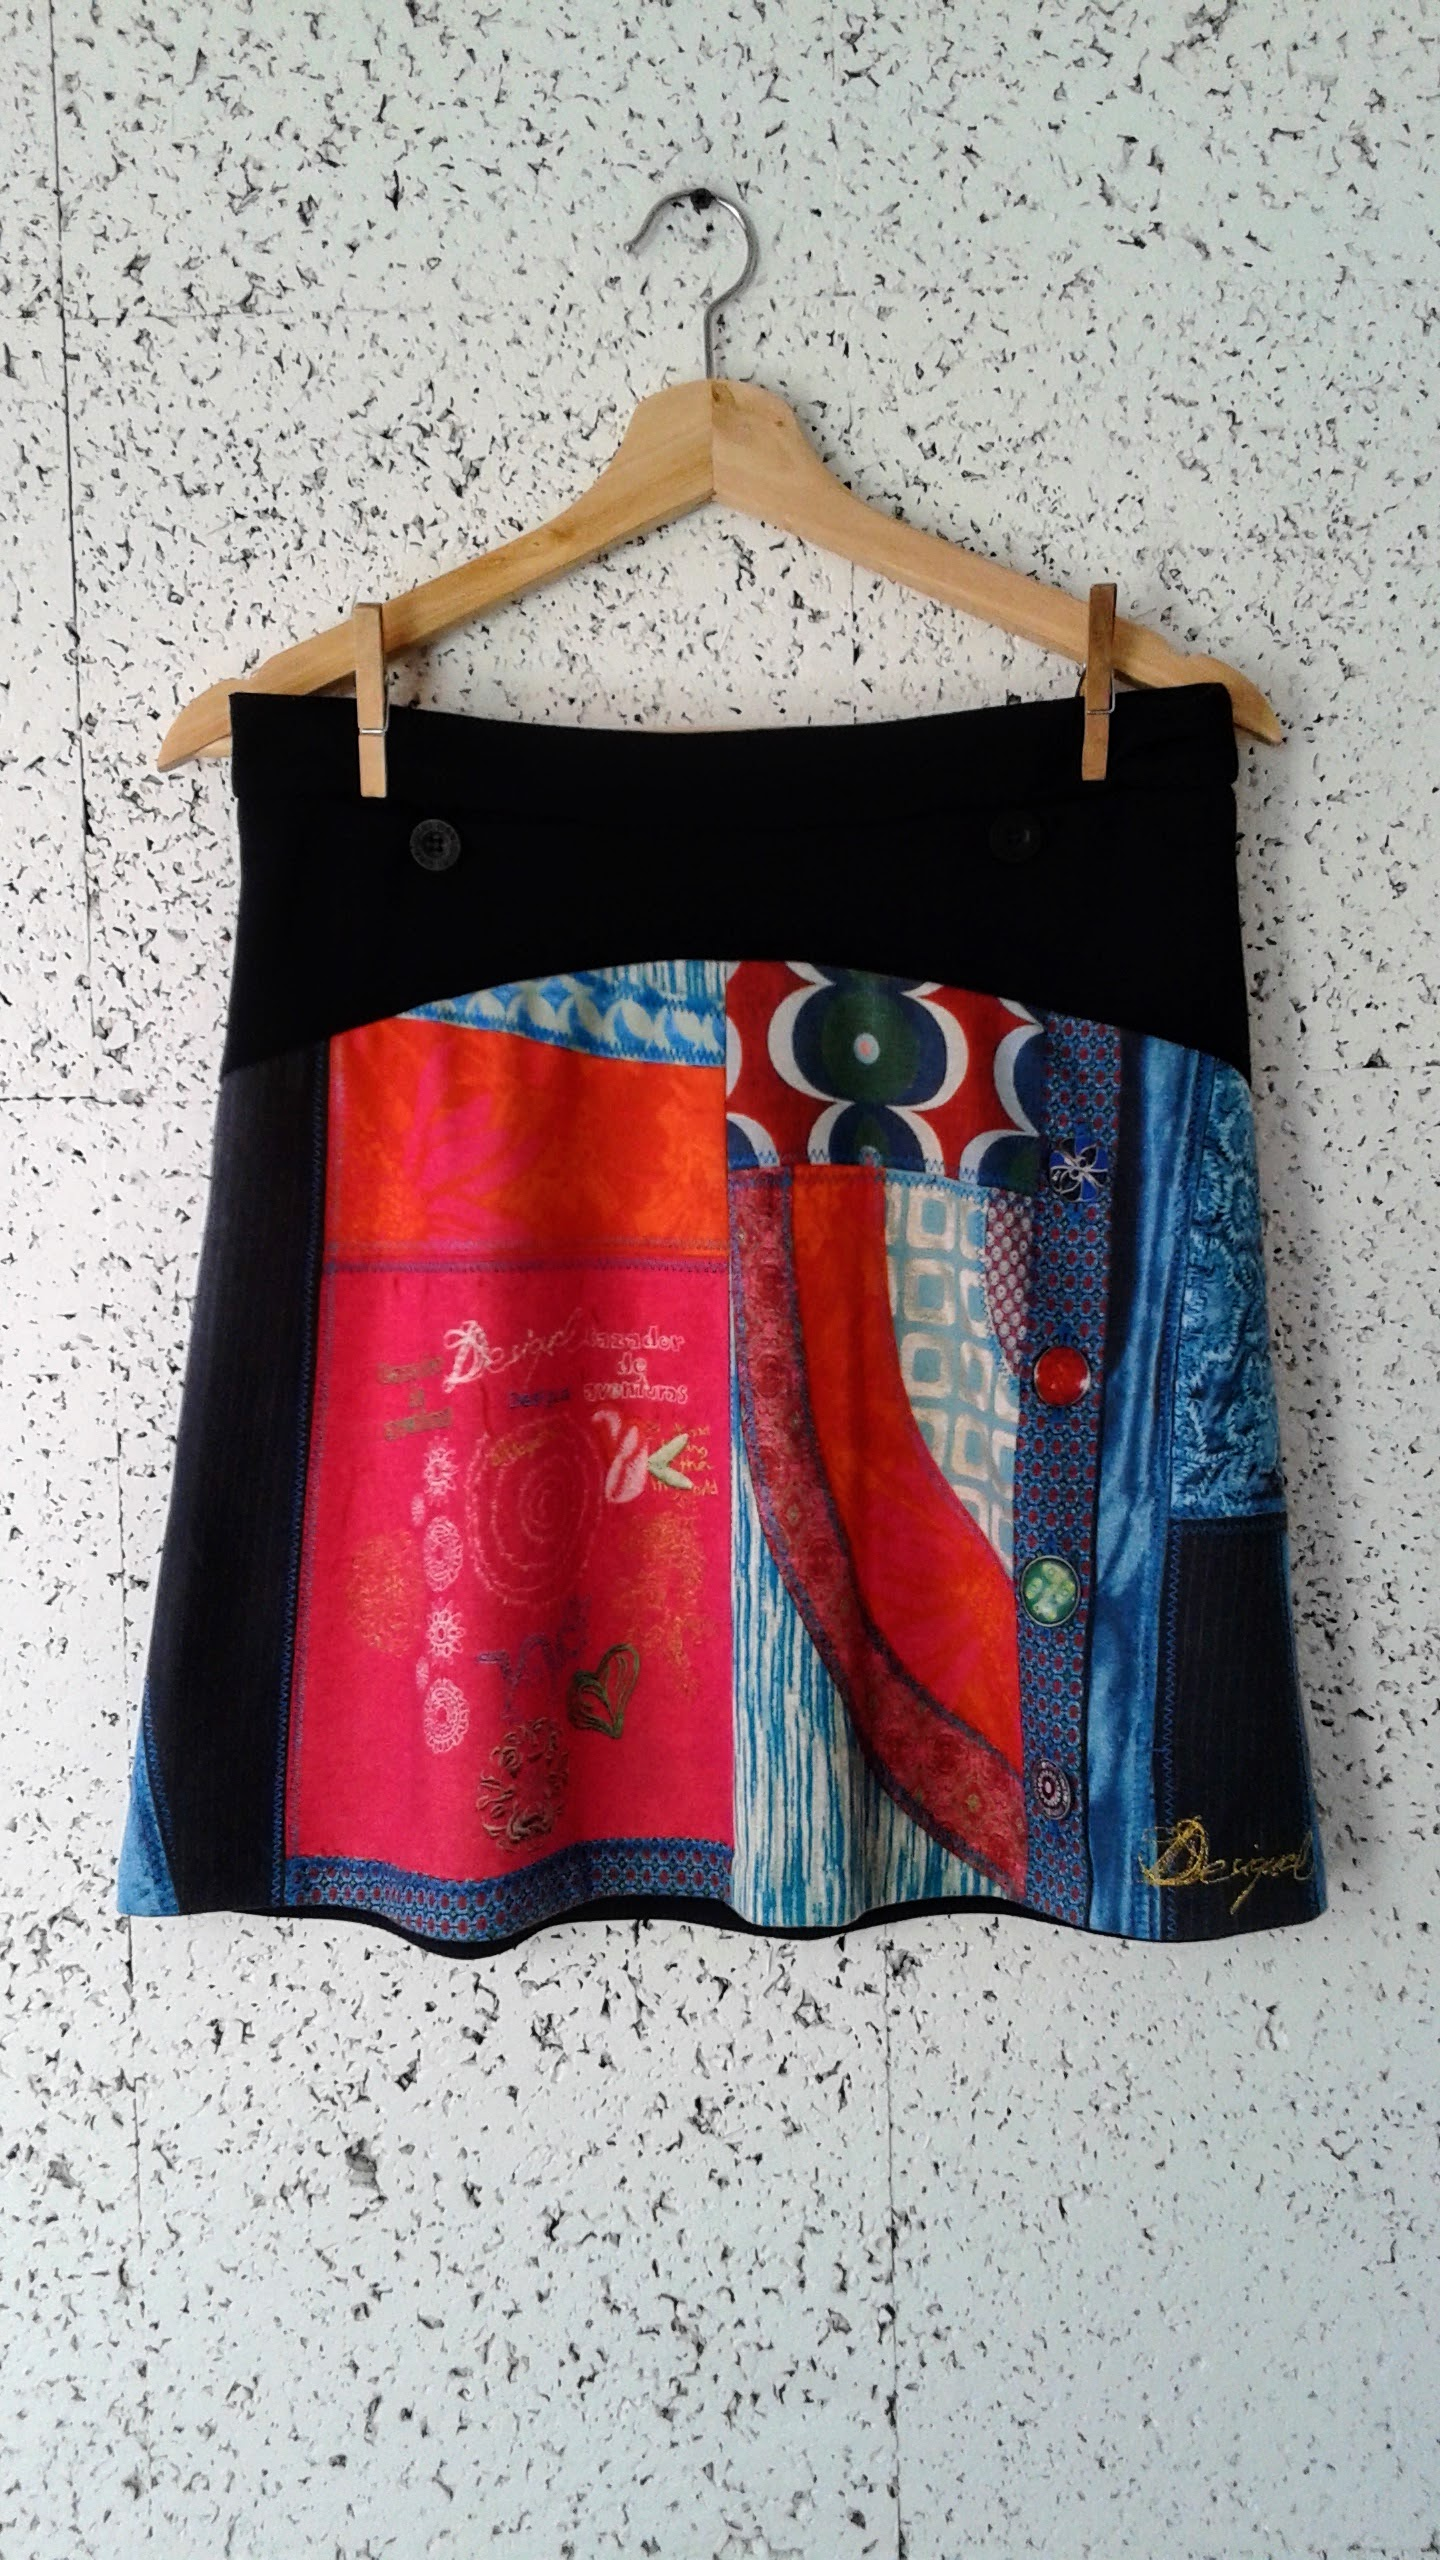 Desegual skirt; Size M, $28